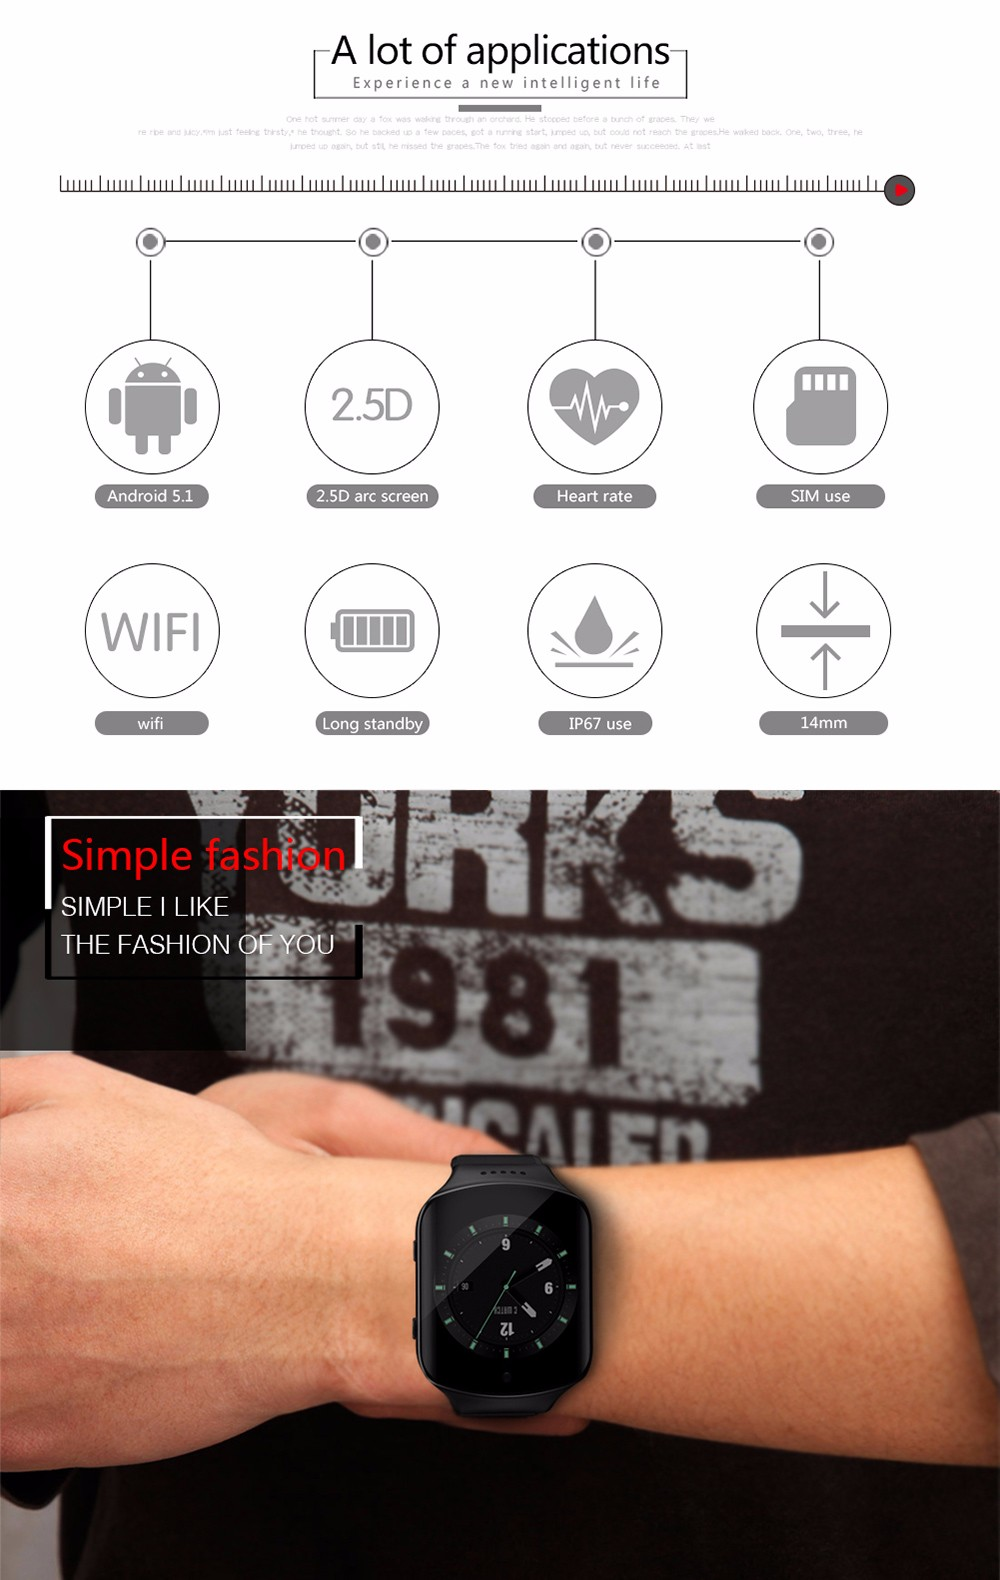 Z80S 1.54 inch Android 5.1 3G Smartwatch Phone MTK6580 Quad Core 1.3GHz 4GB ROM Pedometer Bluetooth GPS